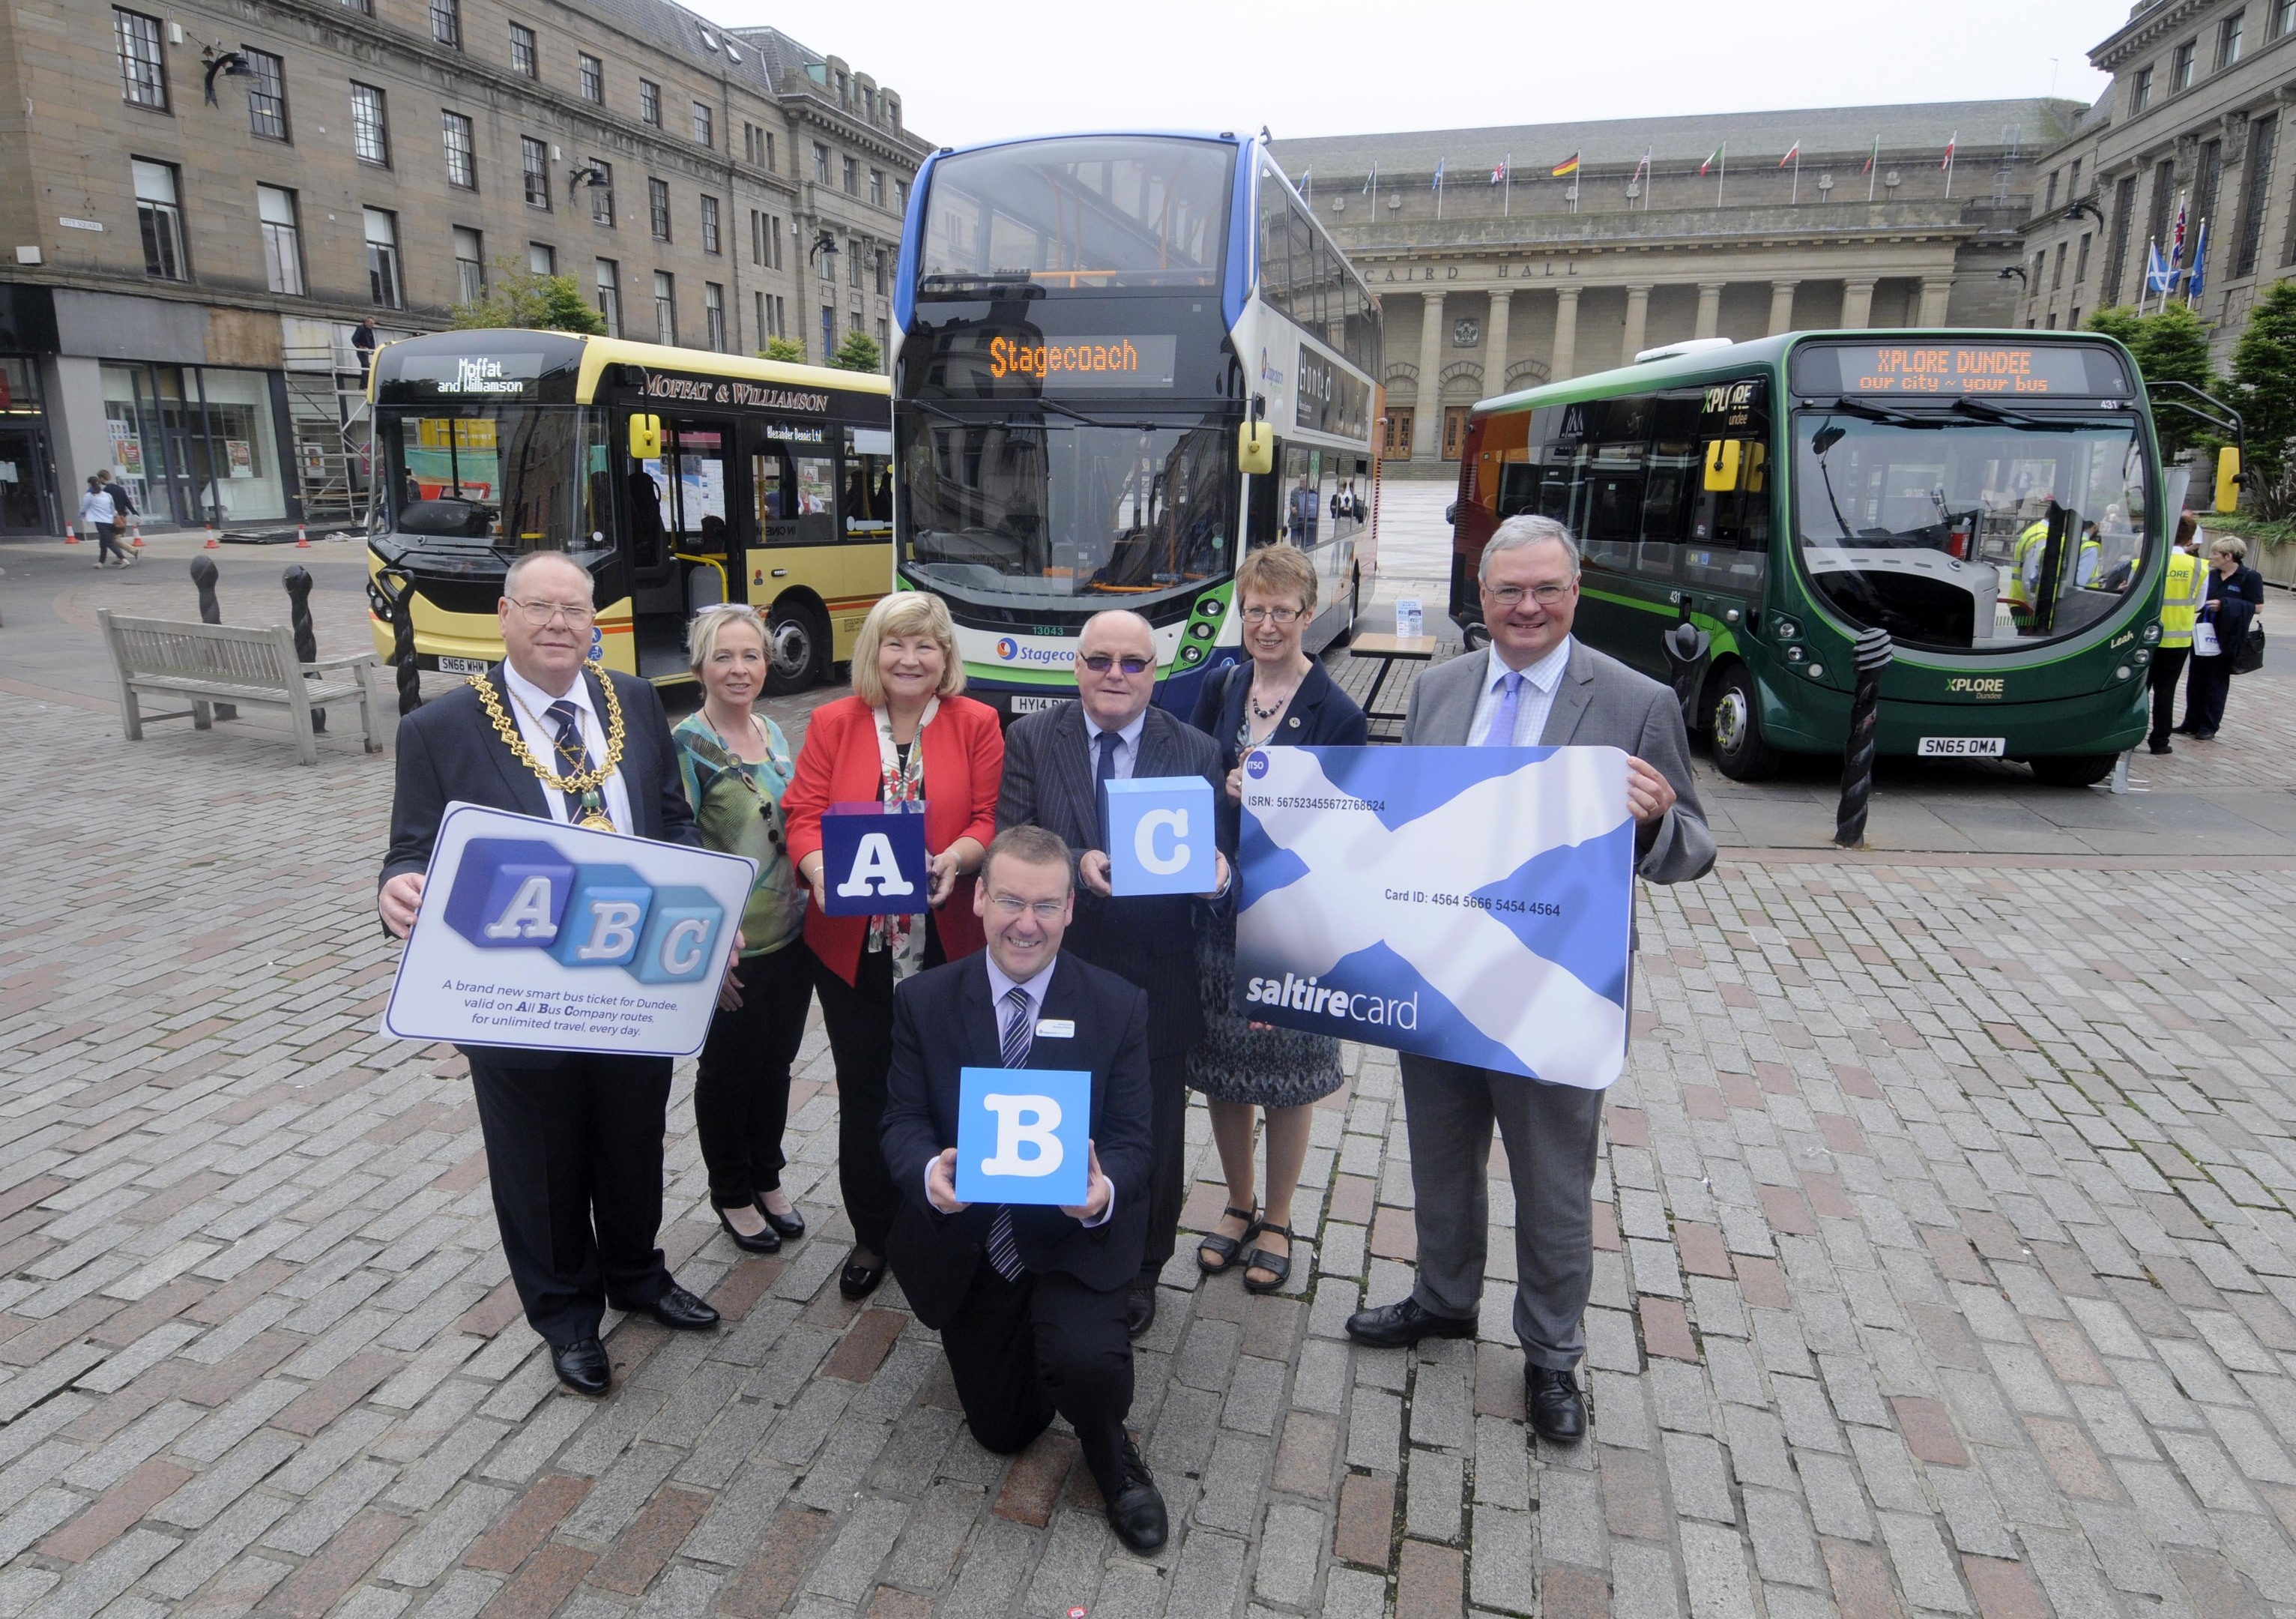 Lord Provost Bob Duncan, Kate Leer, Scottish Cities Alliance, Elsie Turbyne, MD Xplore Dundee, Andrew Jarvis, MD Stagecoach East Scotland, George Devine, MD Moffat & Williamson, Lesley Millar, Angus Council, Bill Reeve, Transport Scotland